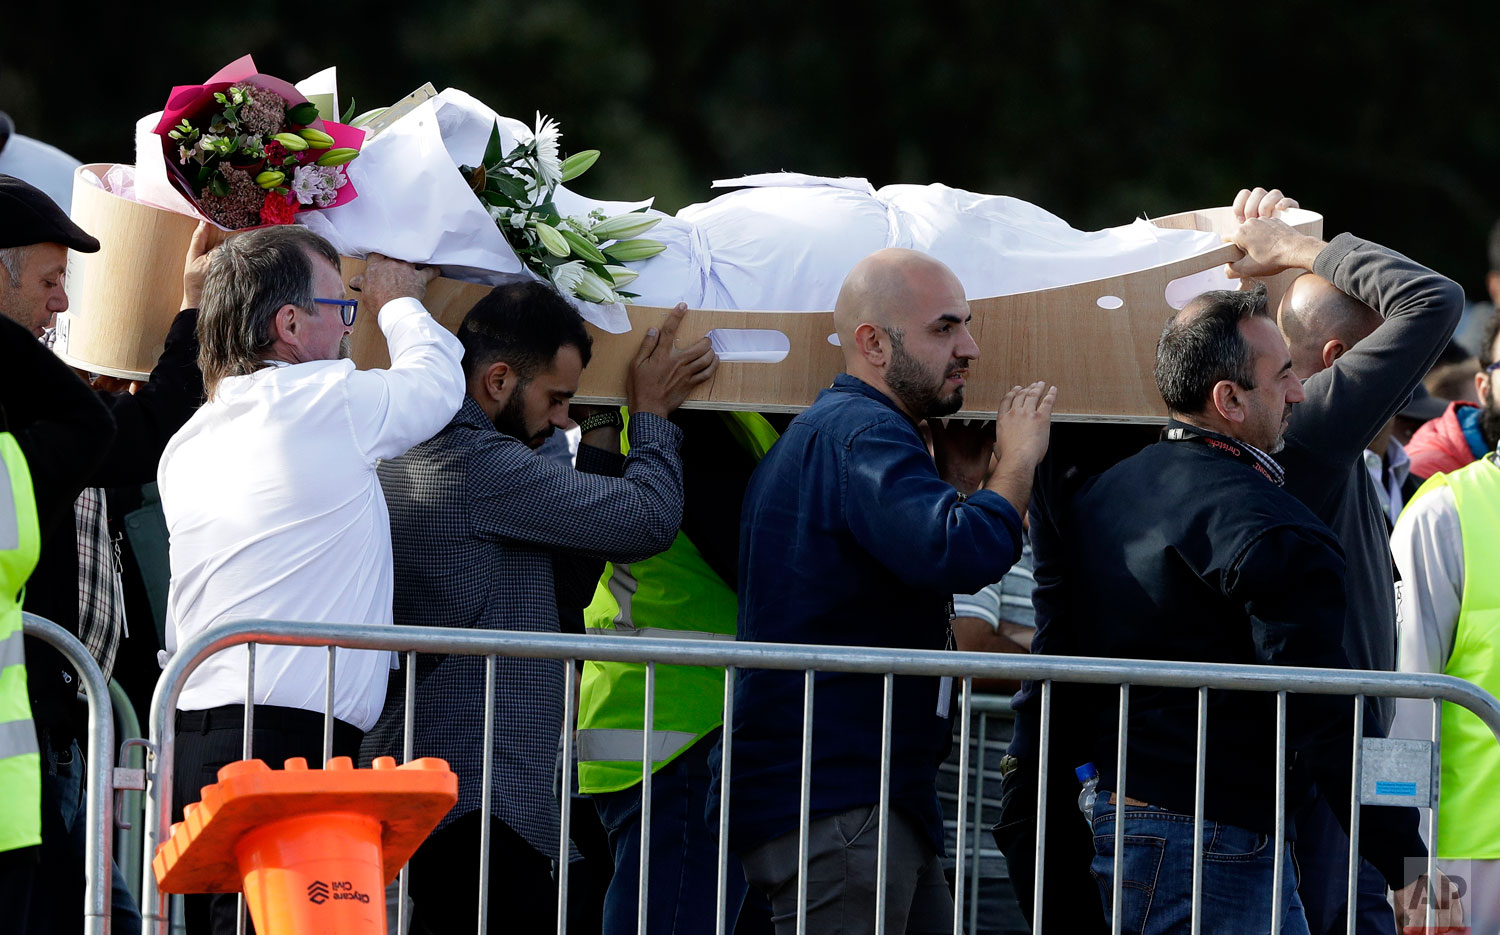 Mourners carry a body at Memorial Park Cemetery in Christchurch, New Zealand, Friday, March 22, 2019. Funerals continued following the March 15 mosque attacks where 50 worshippers were killed by a white supremacist.  (AP Photo/Mark Baker)